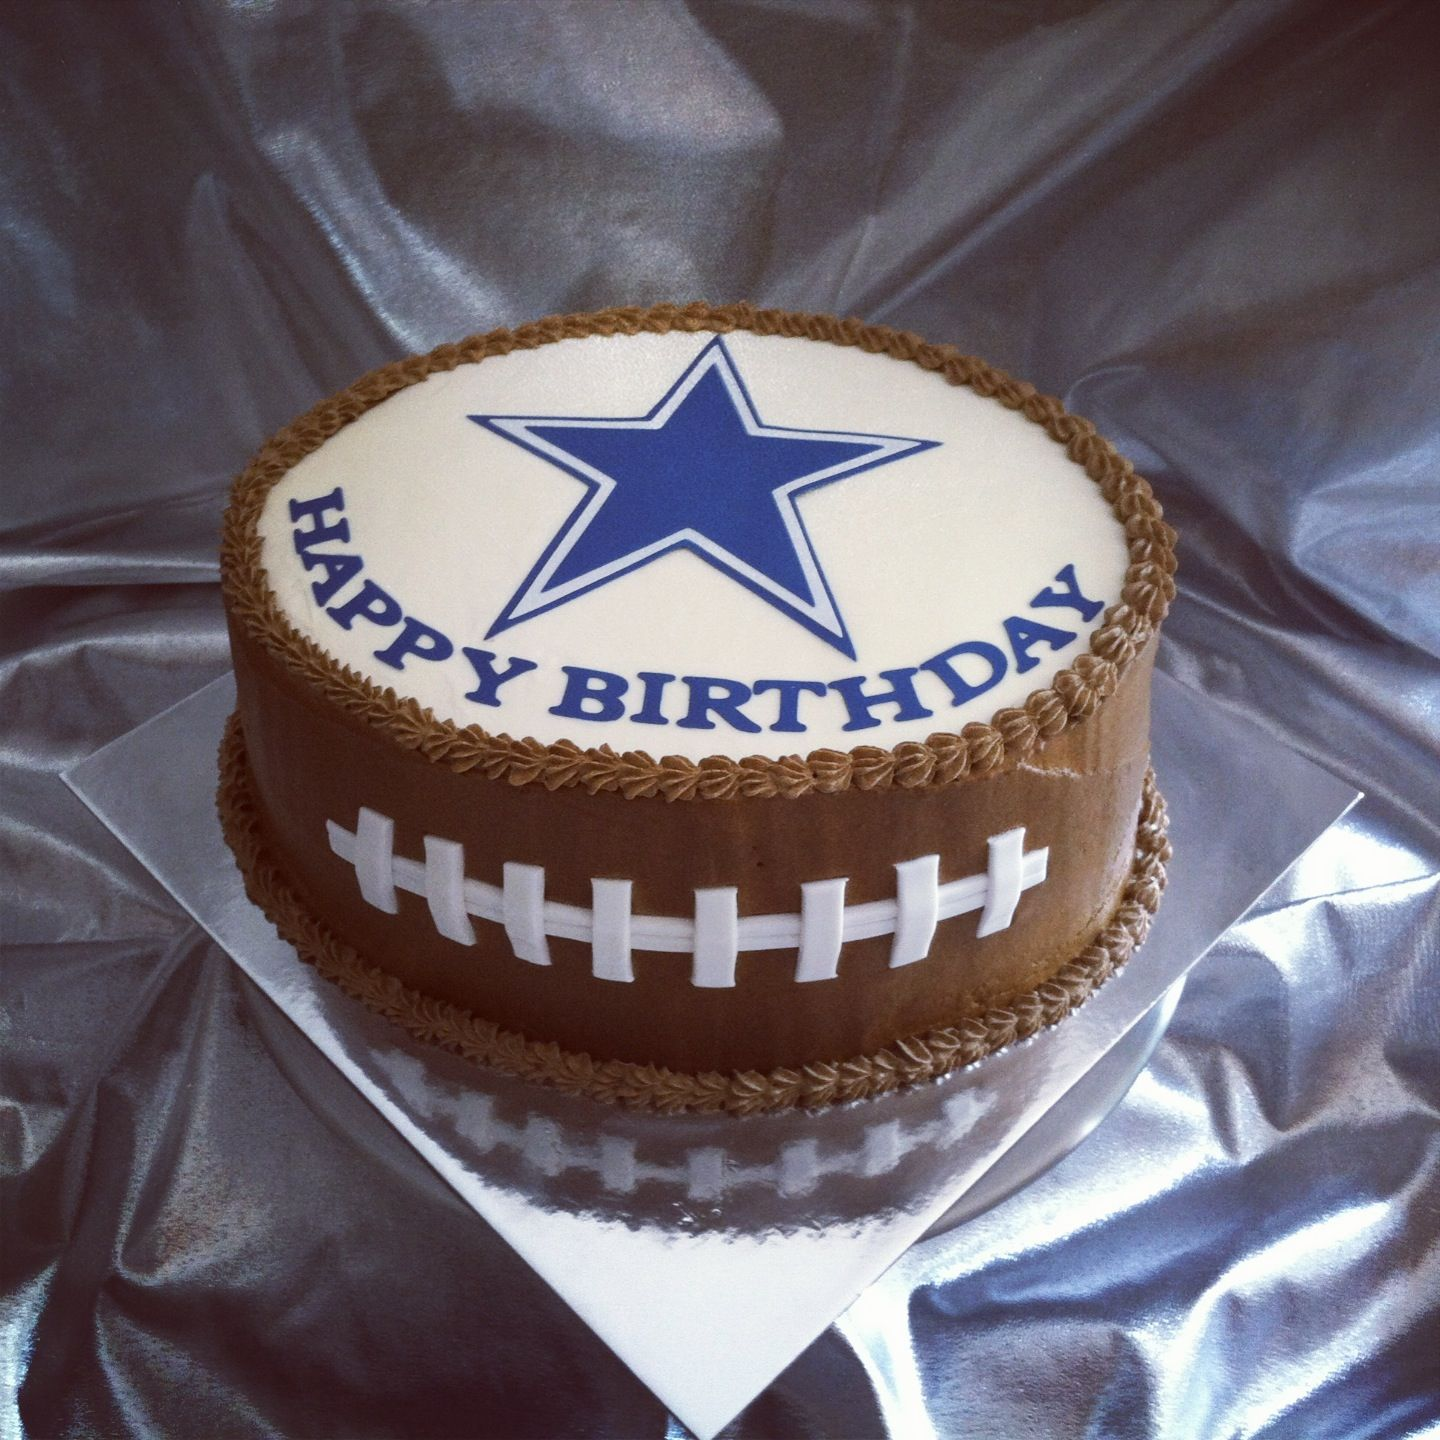 Dallas cowboys birthday cake ideas and designs - Dallas Cowboys Cake Ideas And Designs